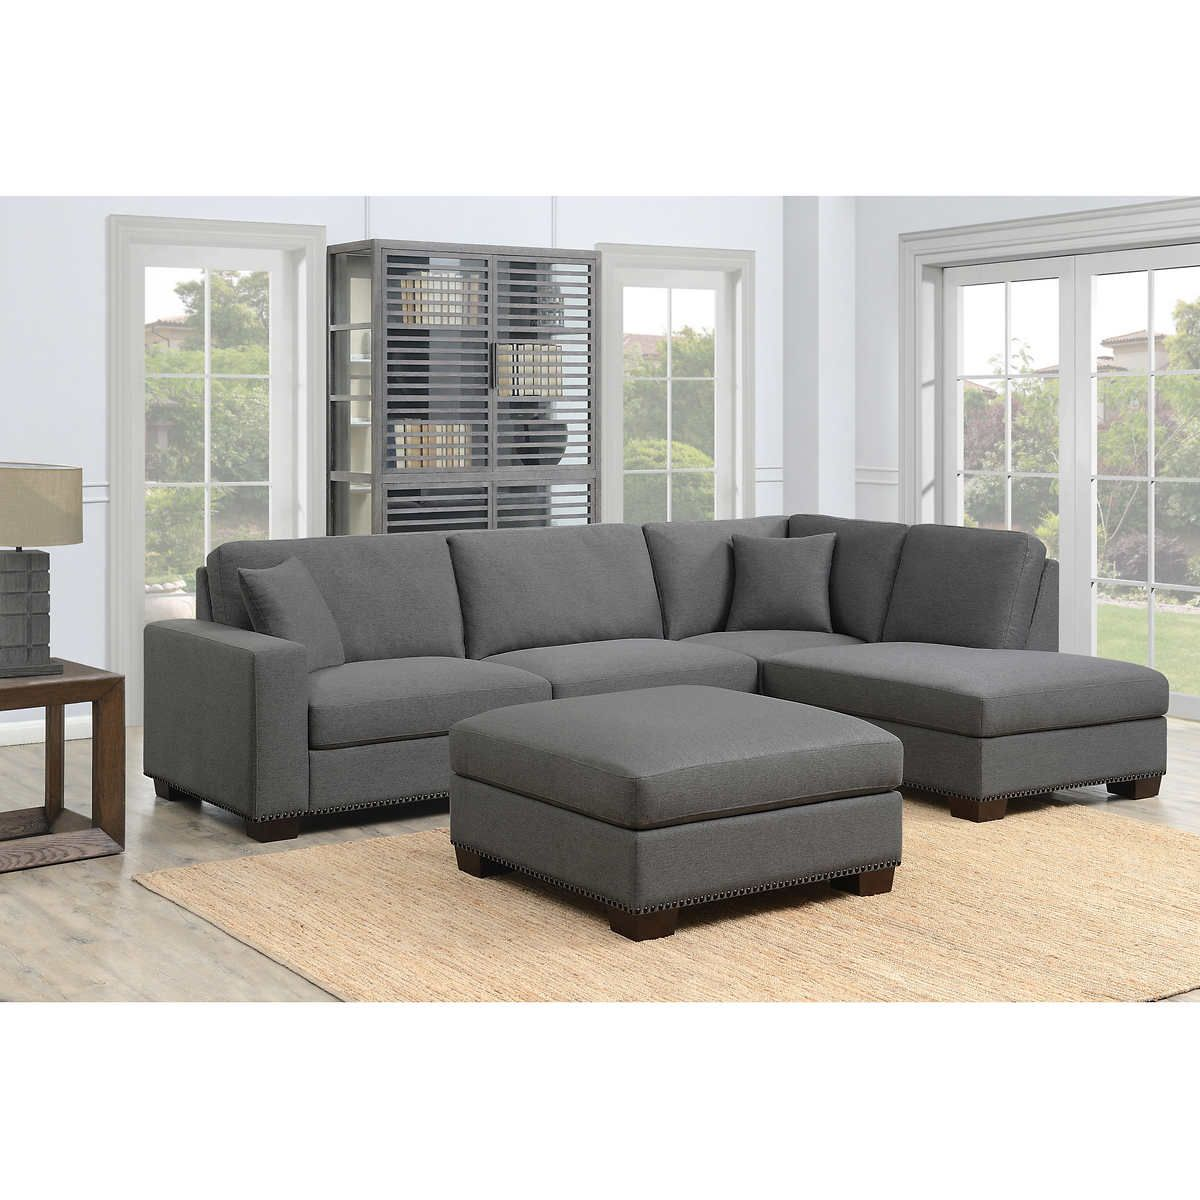 Thomasville Artesia 3piece Fabric Sectional with Ottoman